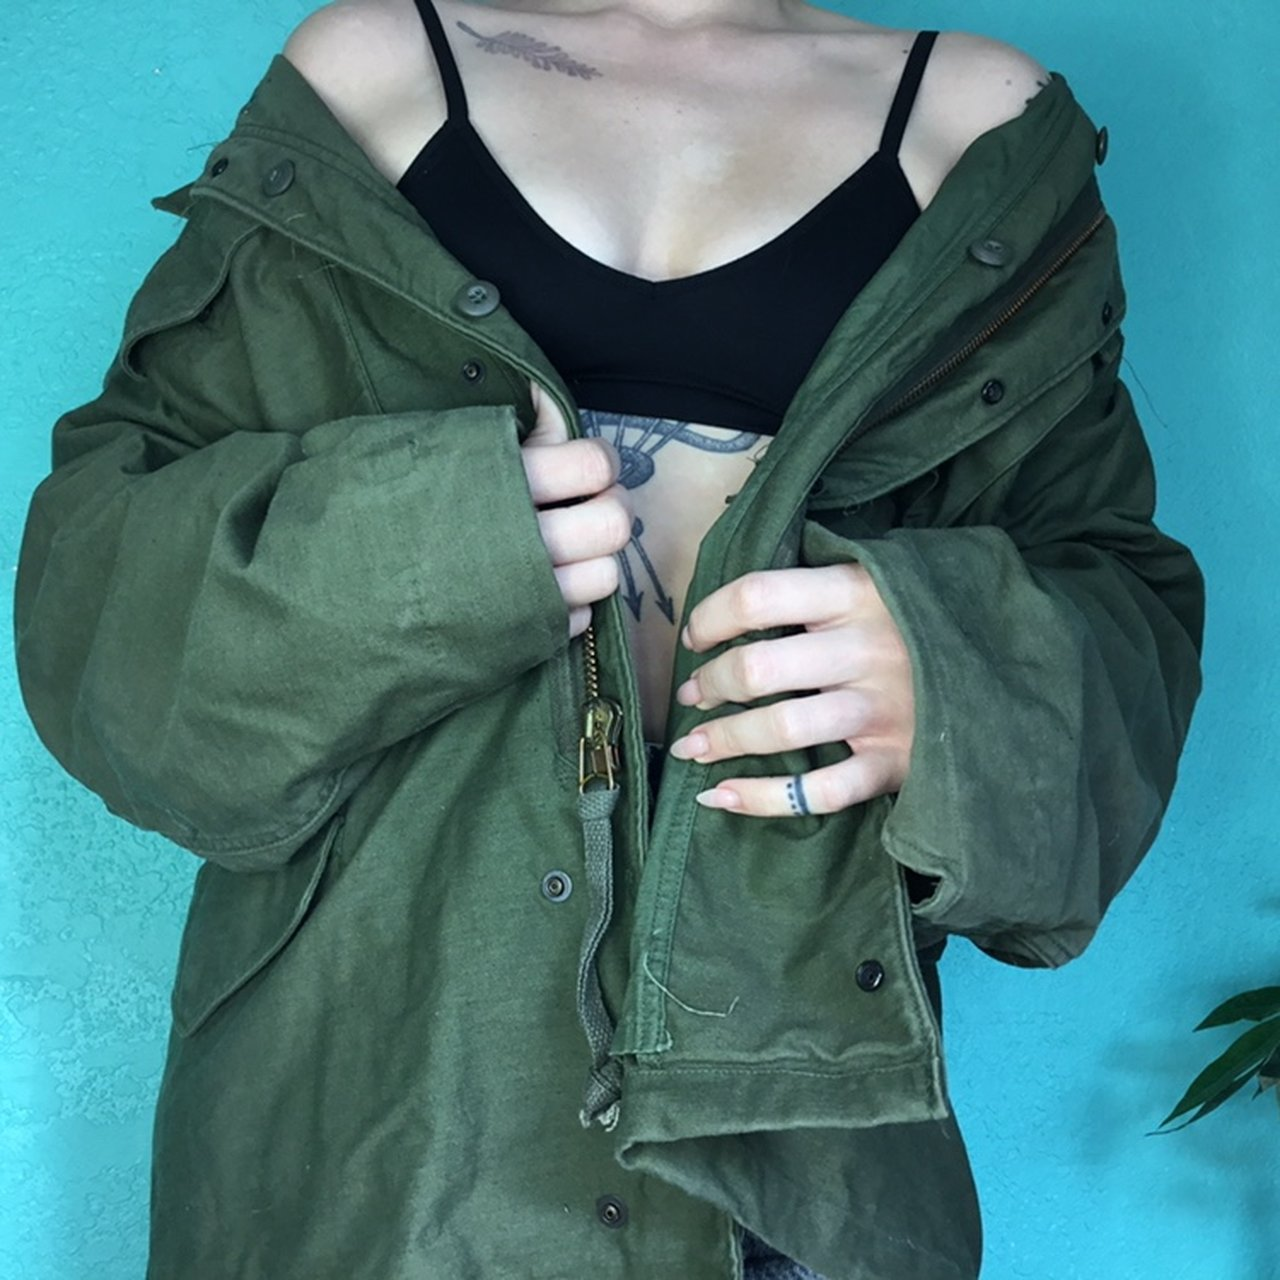 Military Coat Olive Colored Warm As Hell Army Jacket With Depop